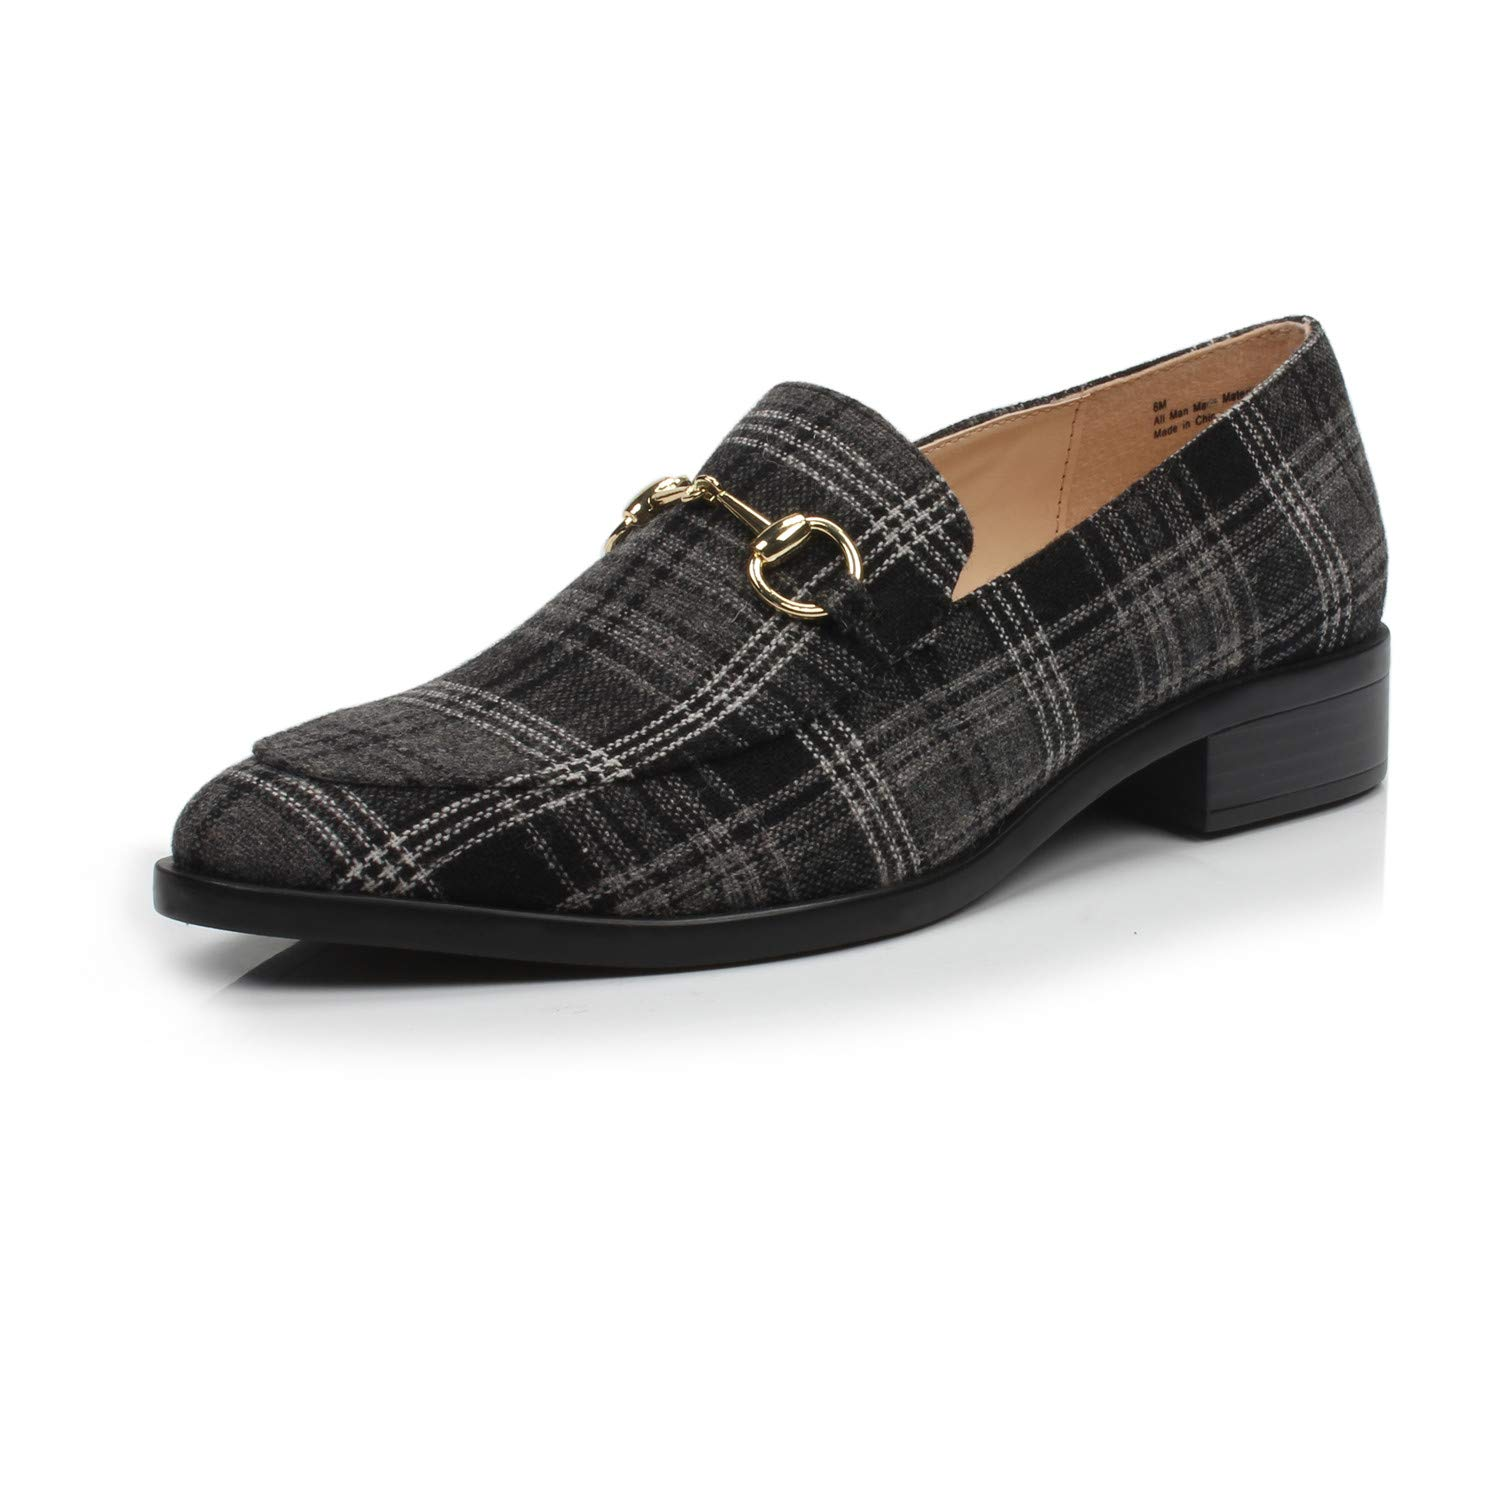 Black Plaid DUNION Women's BRINE Comfortable Slip on Chain Decorated Penny Loafers Low Heels Almond Toe Casual Daily shoes